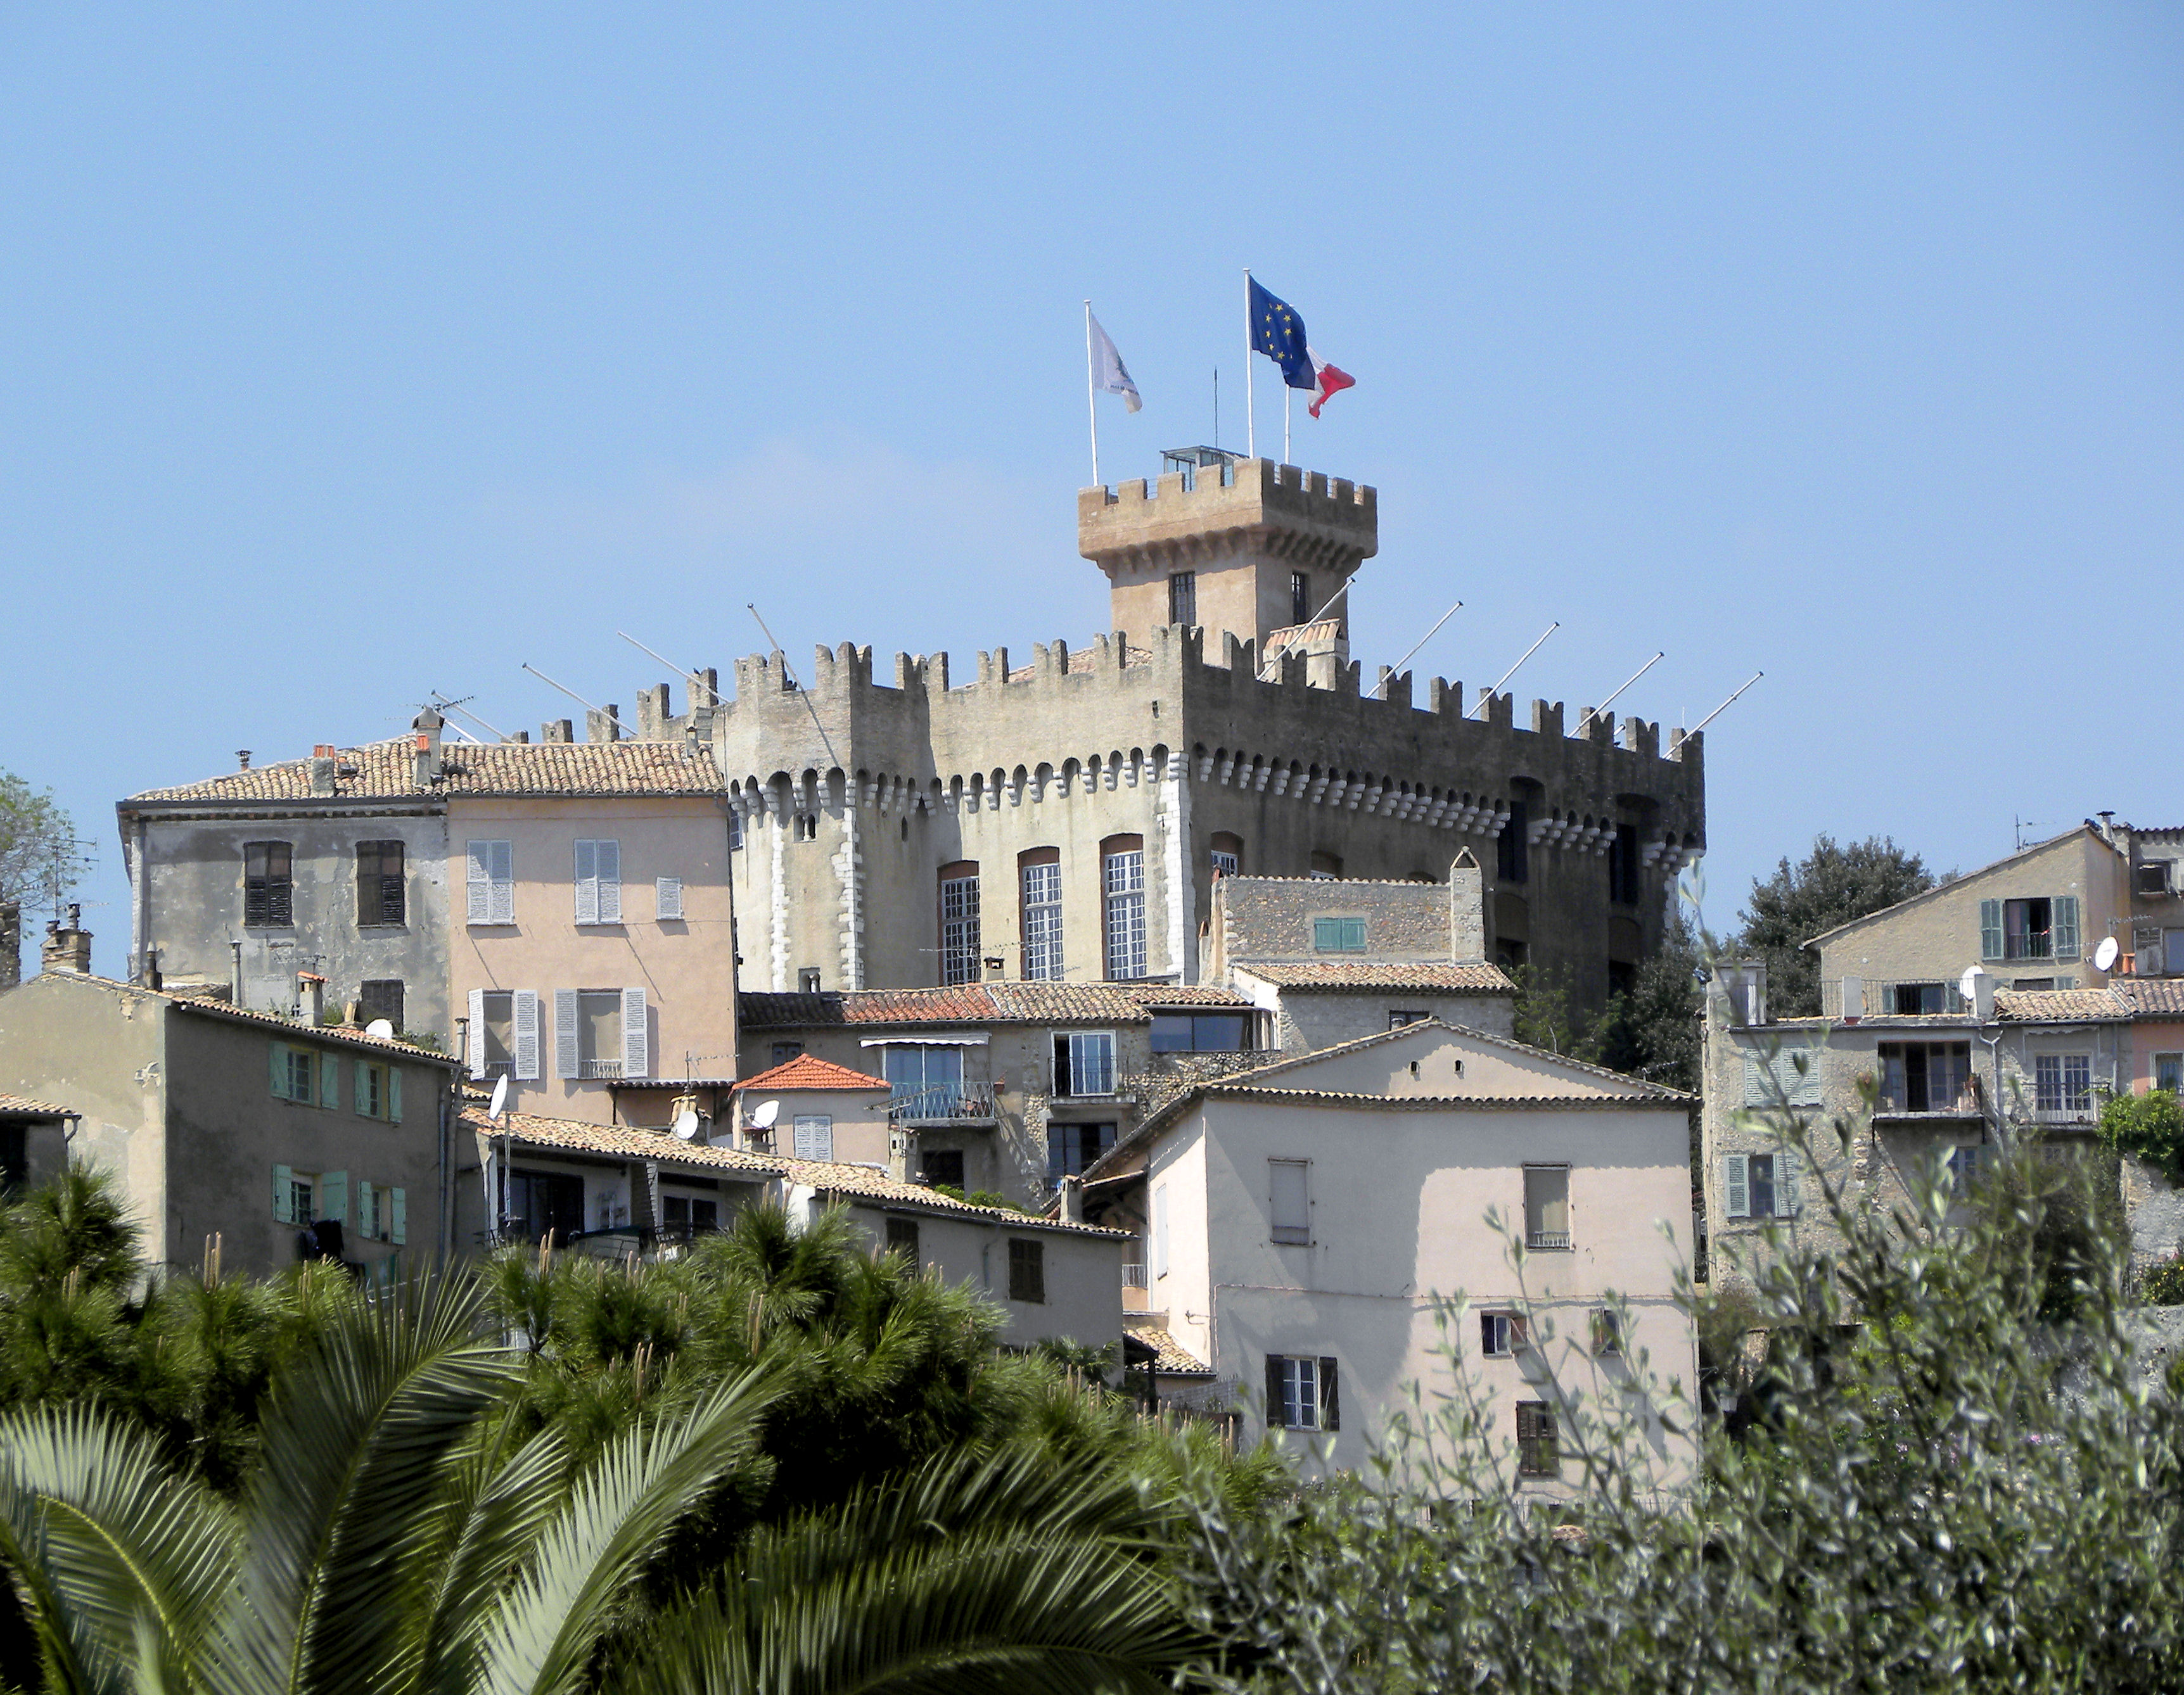 Cagnes-sur-Mer France  city images : Cagnes sur Mer on the French Riviera | Lou Murray's Green World